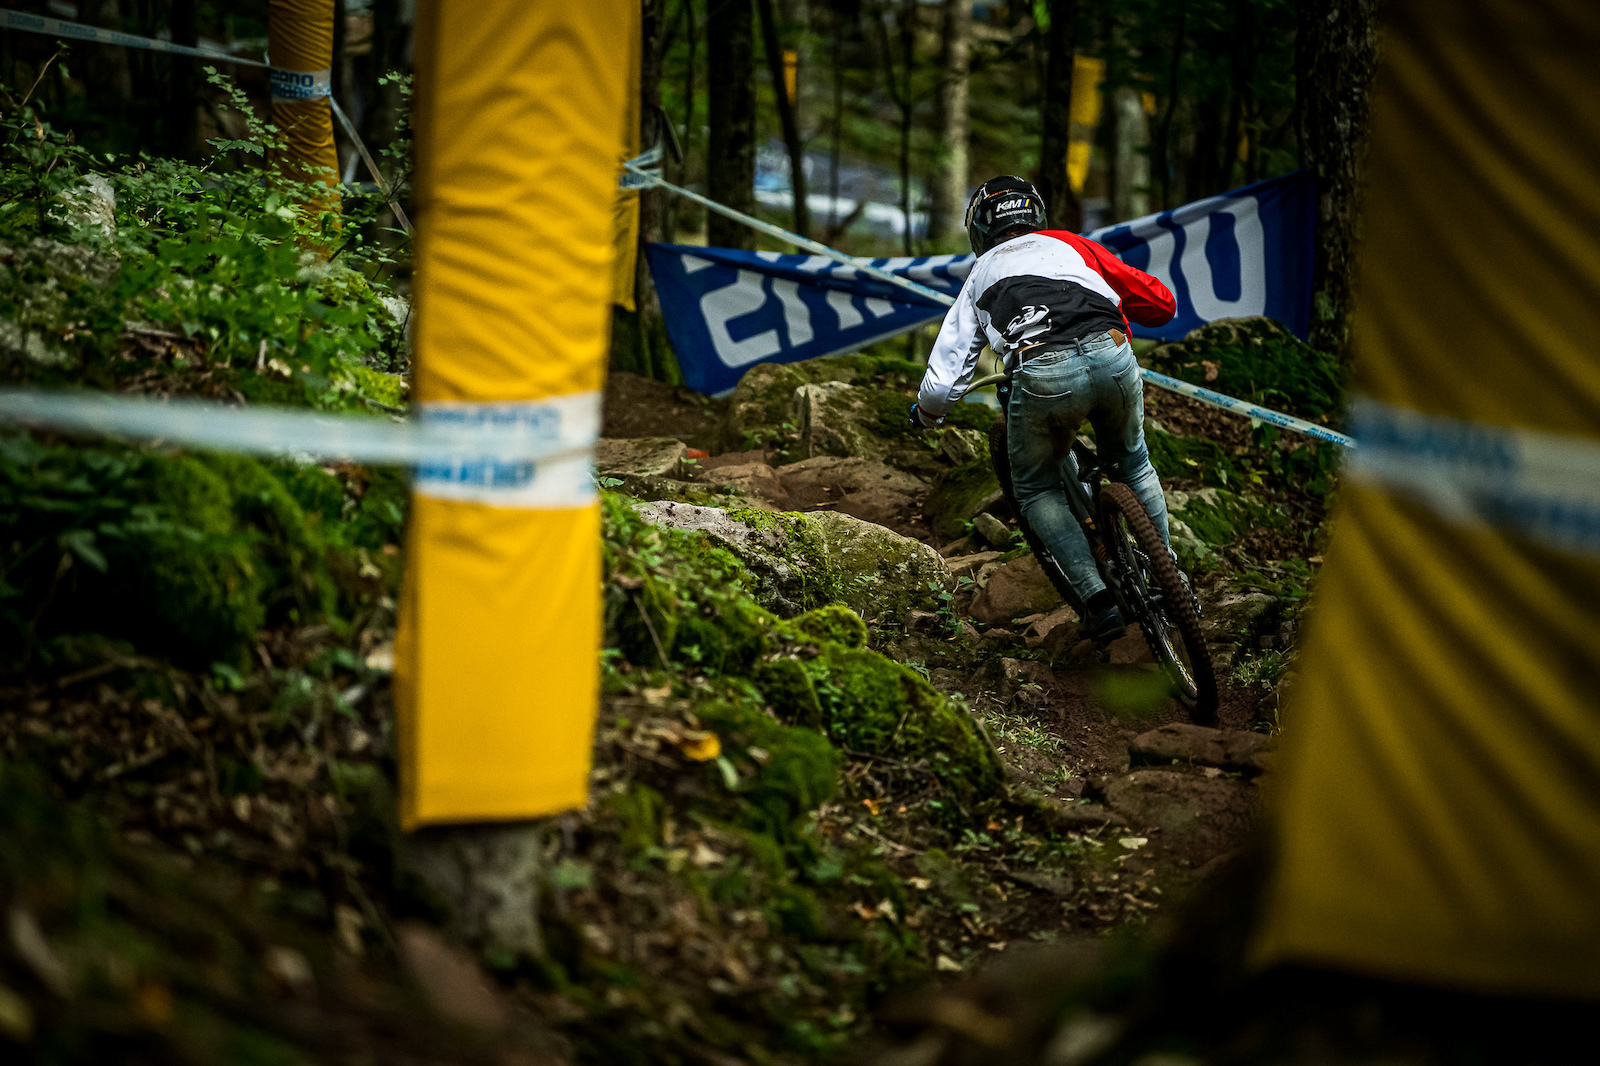 Johannes Von Klebelsberg will be looking for some redemption here in the USA after a champs gone wrong last weekend.